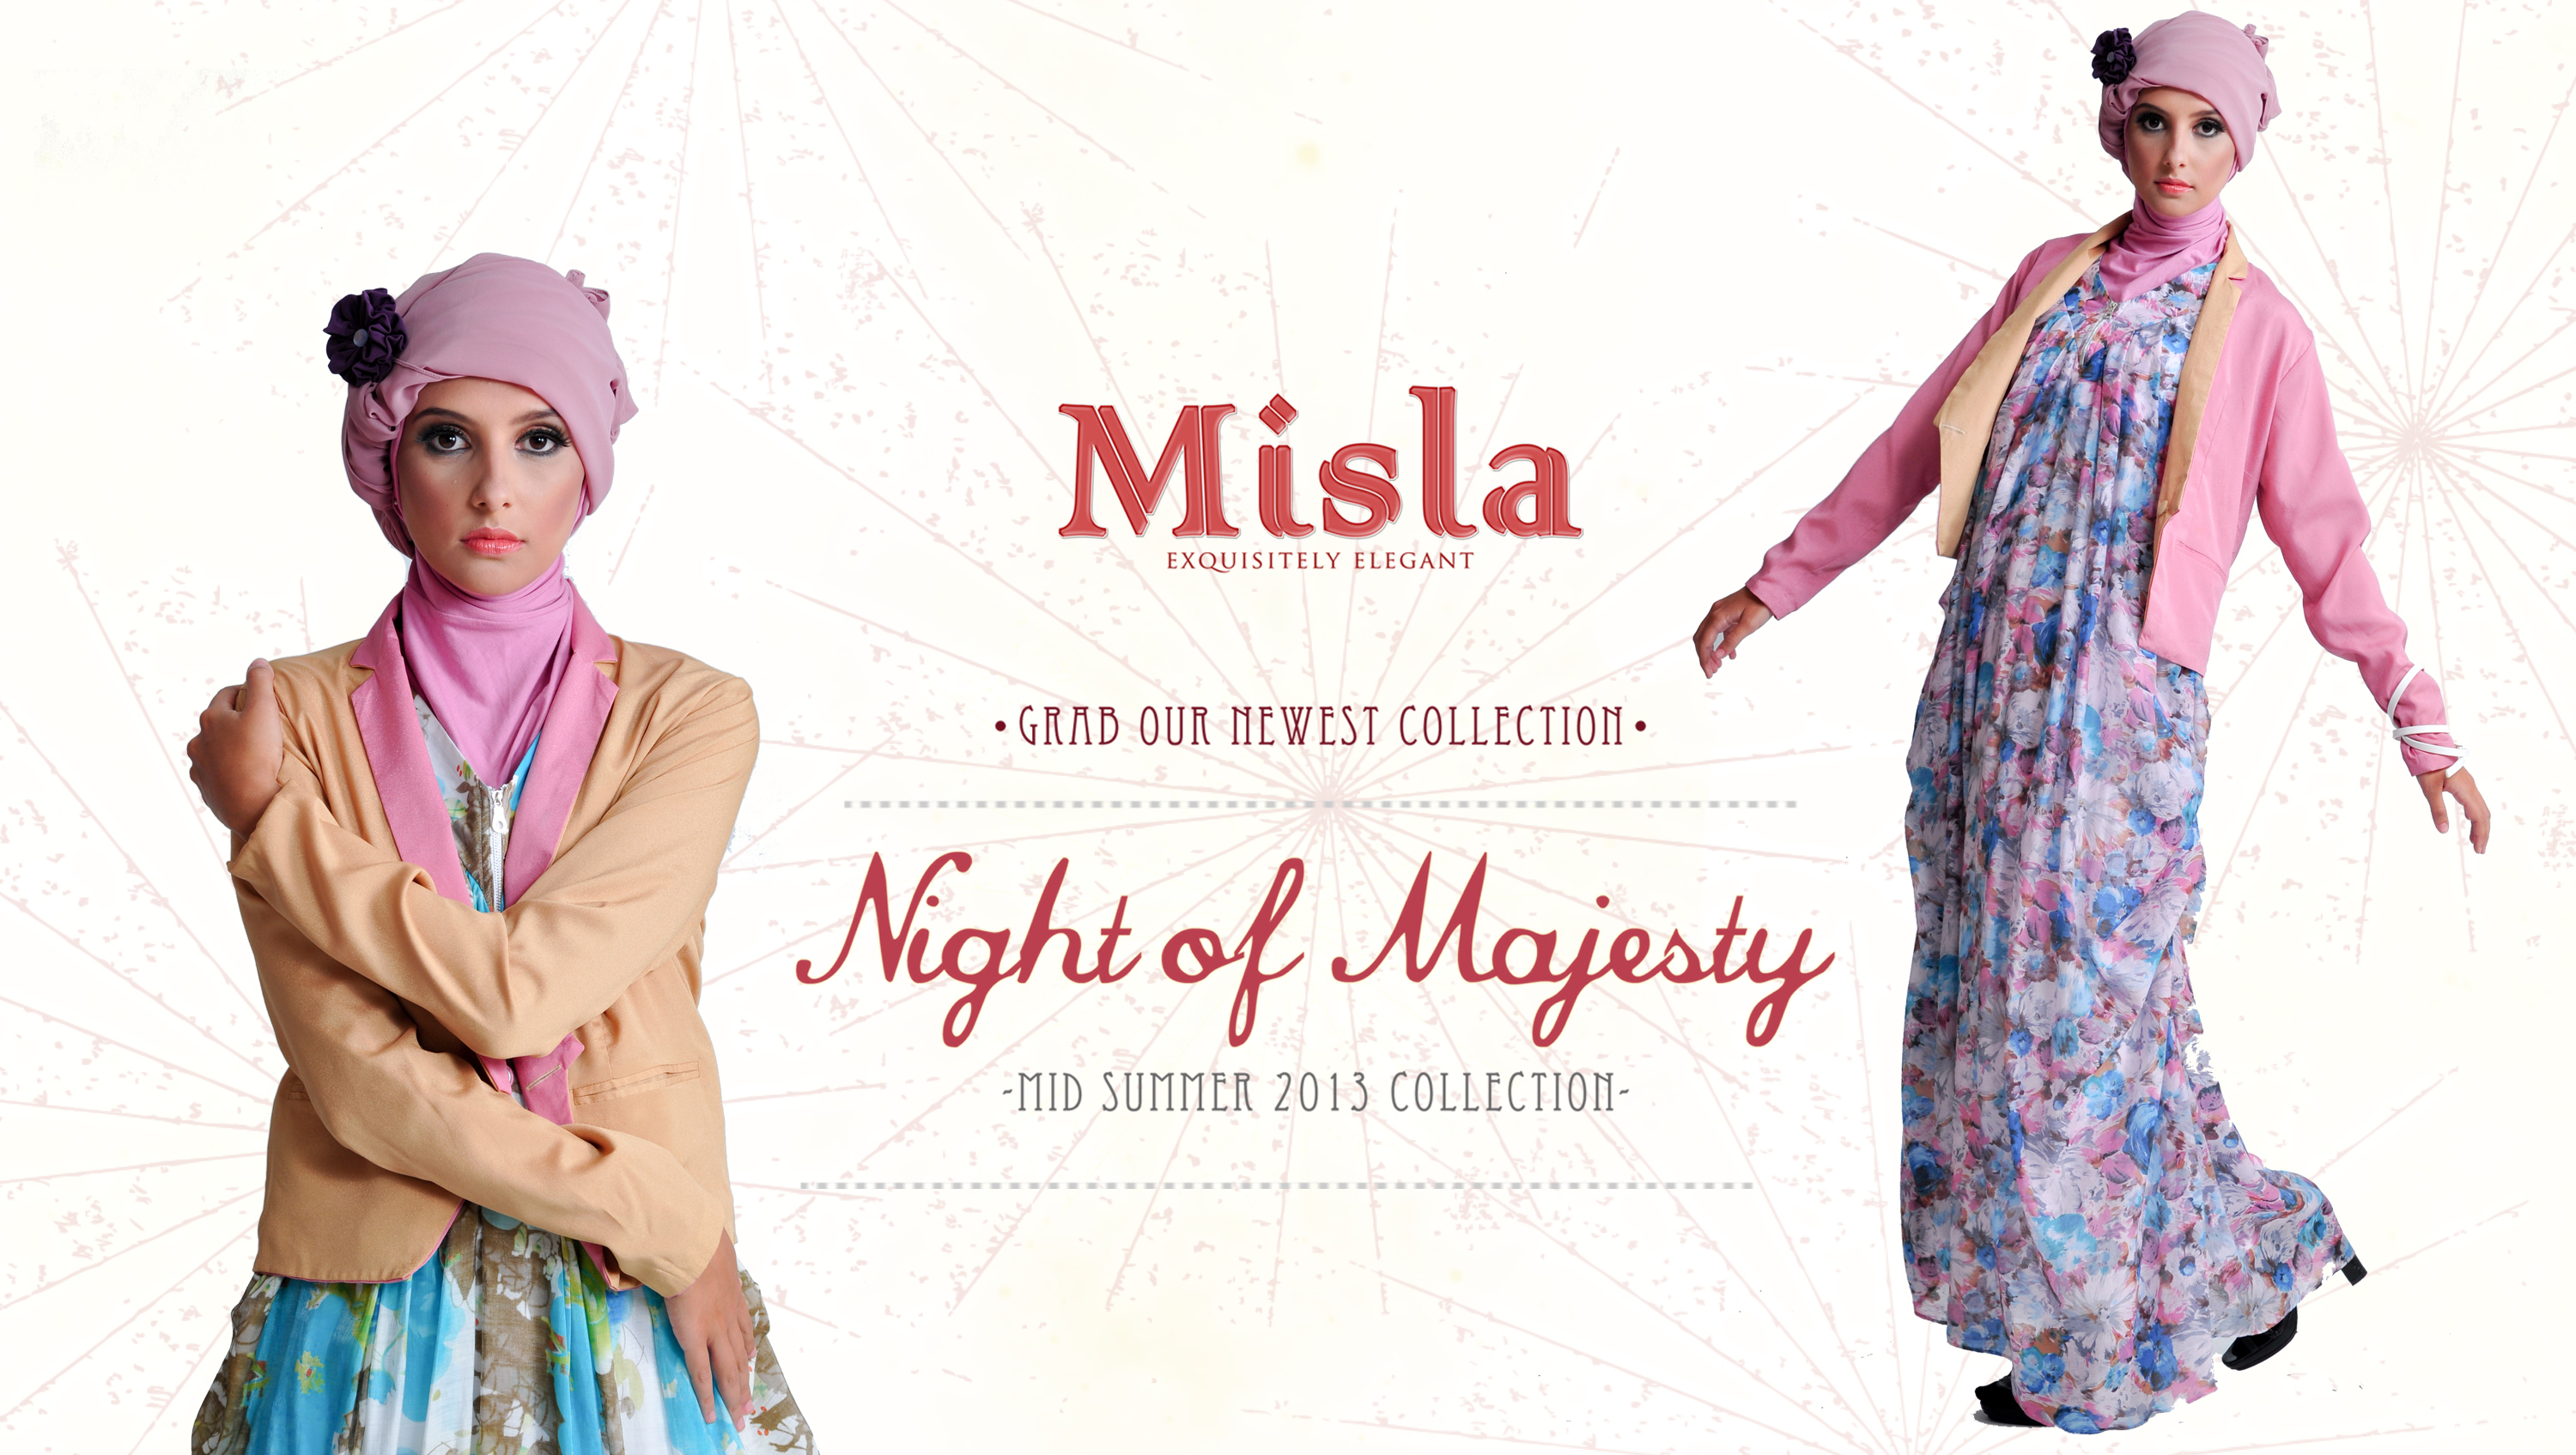 nom-lookbook-5-8 Night of Majesty: The Story Behind